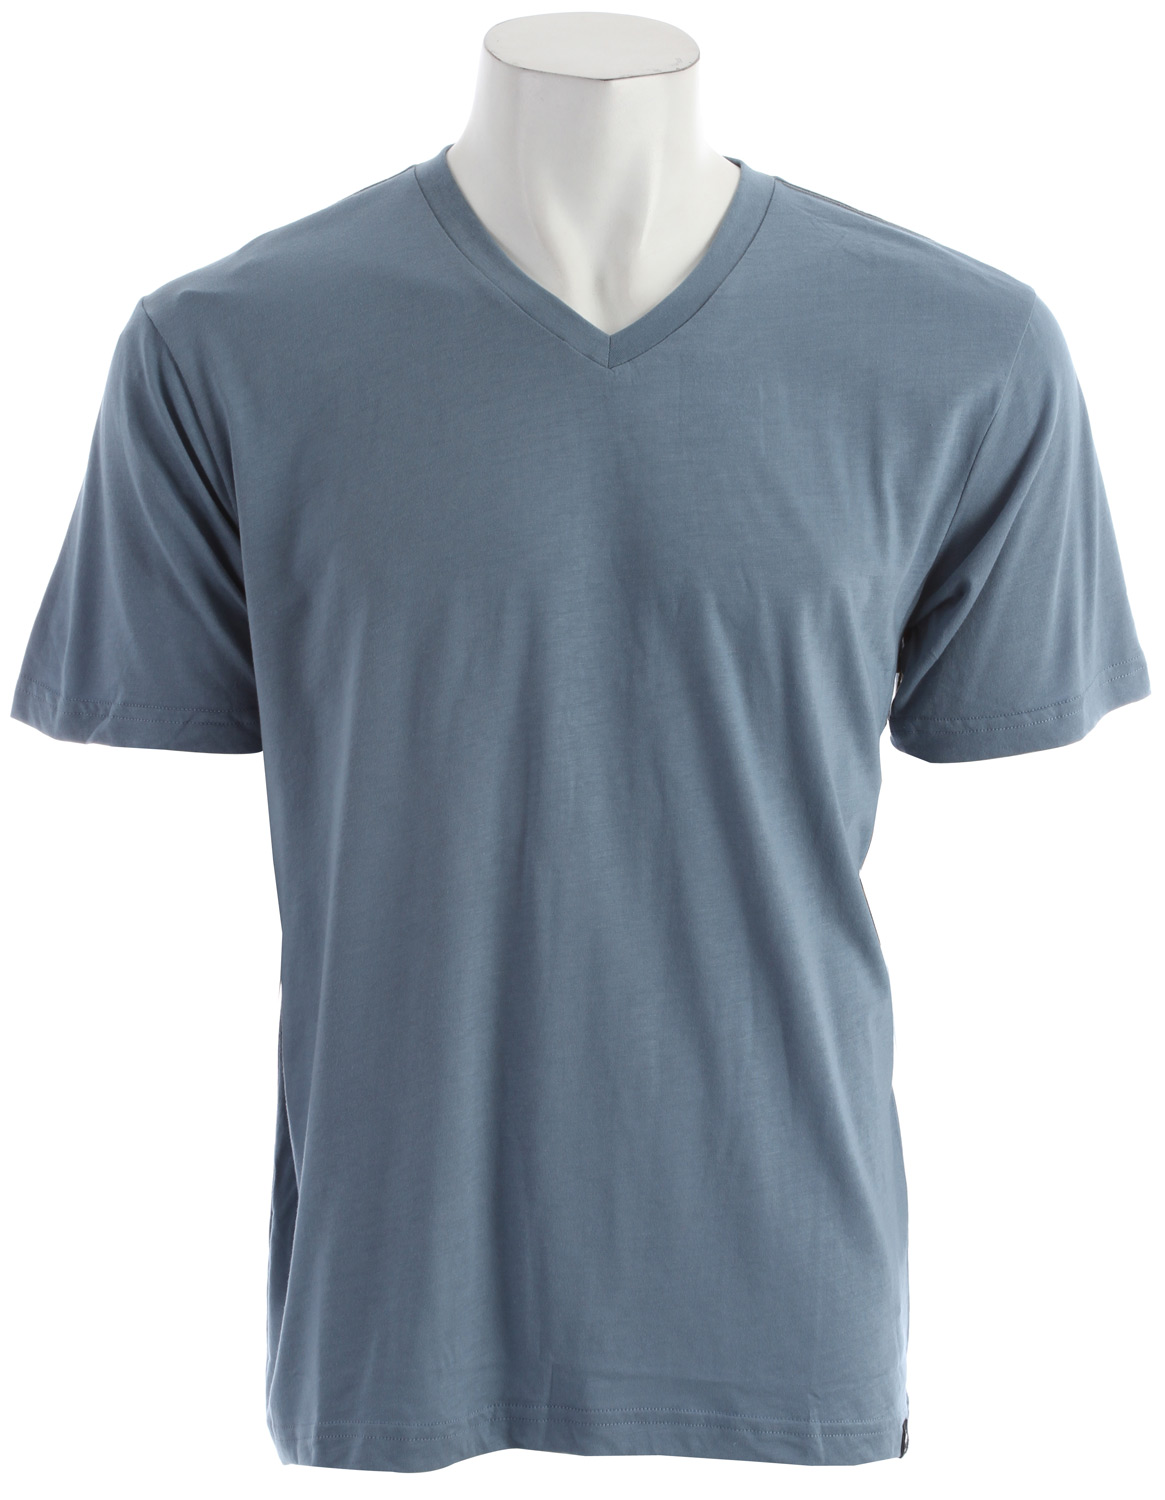 Arbor's premium comfort 70% viscose from bamboo / 30% organic cotton jersey t-shirt, custom made in Los Angeles, regular fit, printed neck label. - $24.95